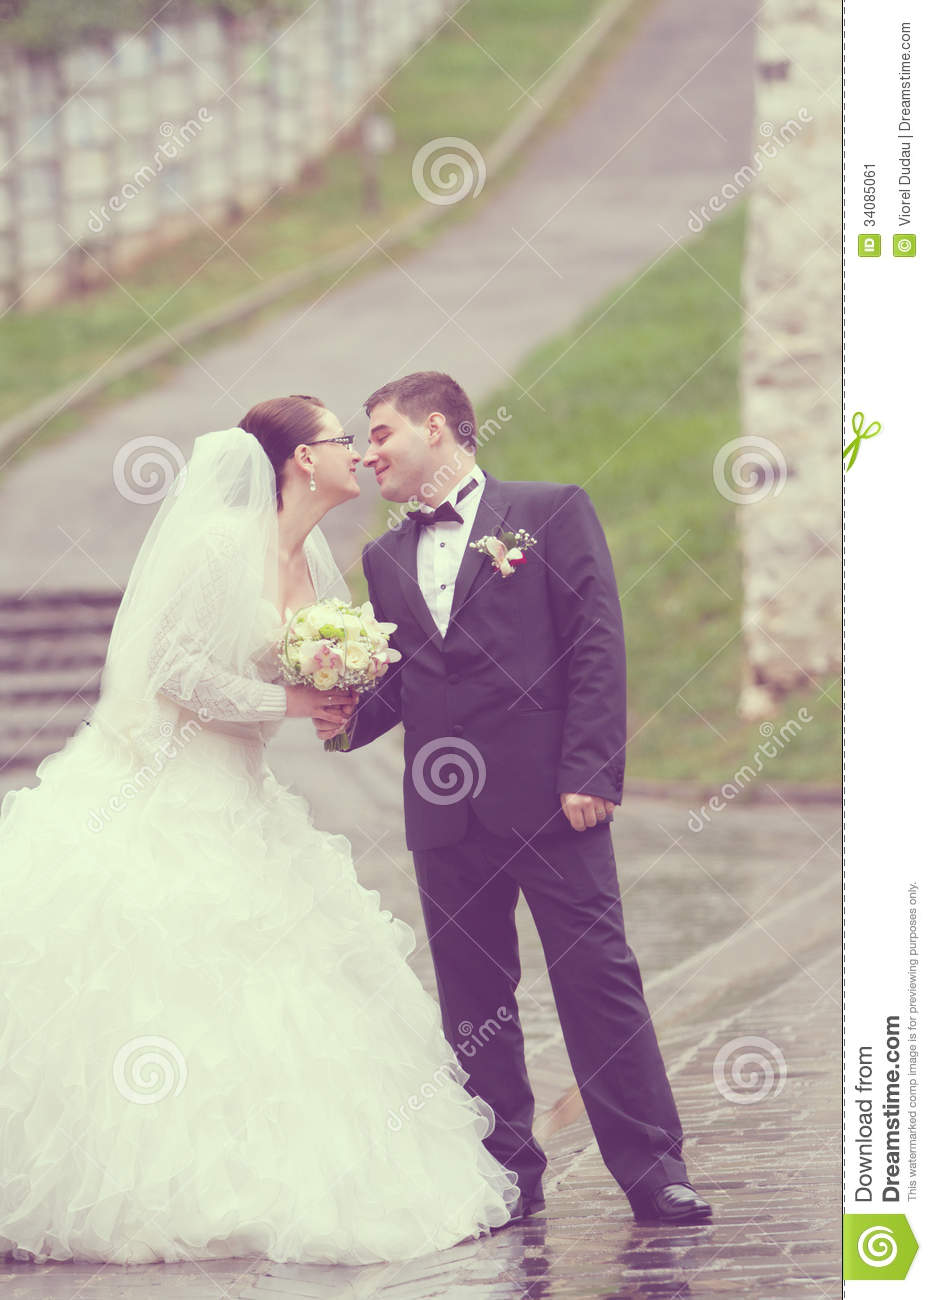 Just Married Couple Stock Image  Image 34085061